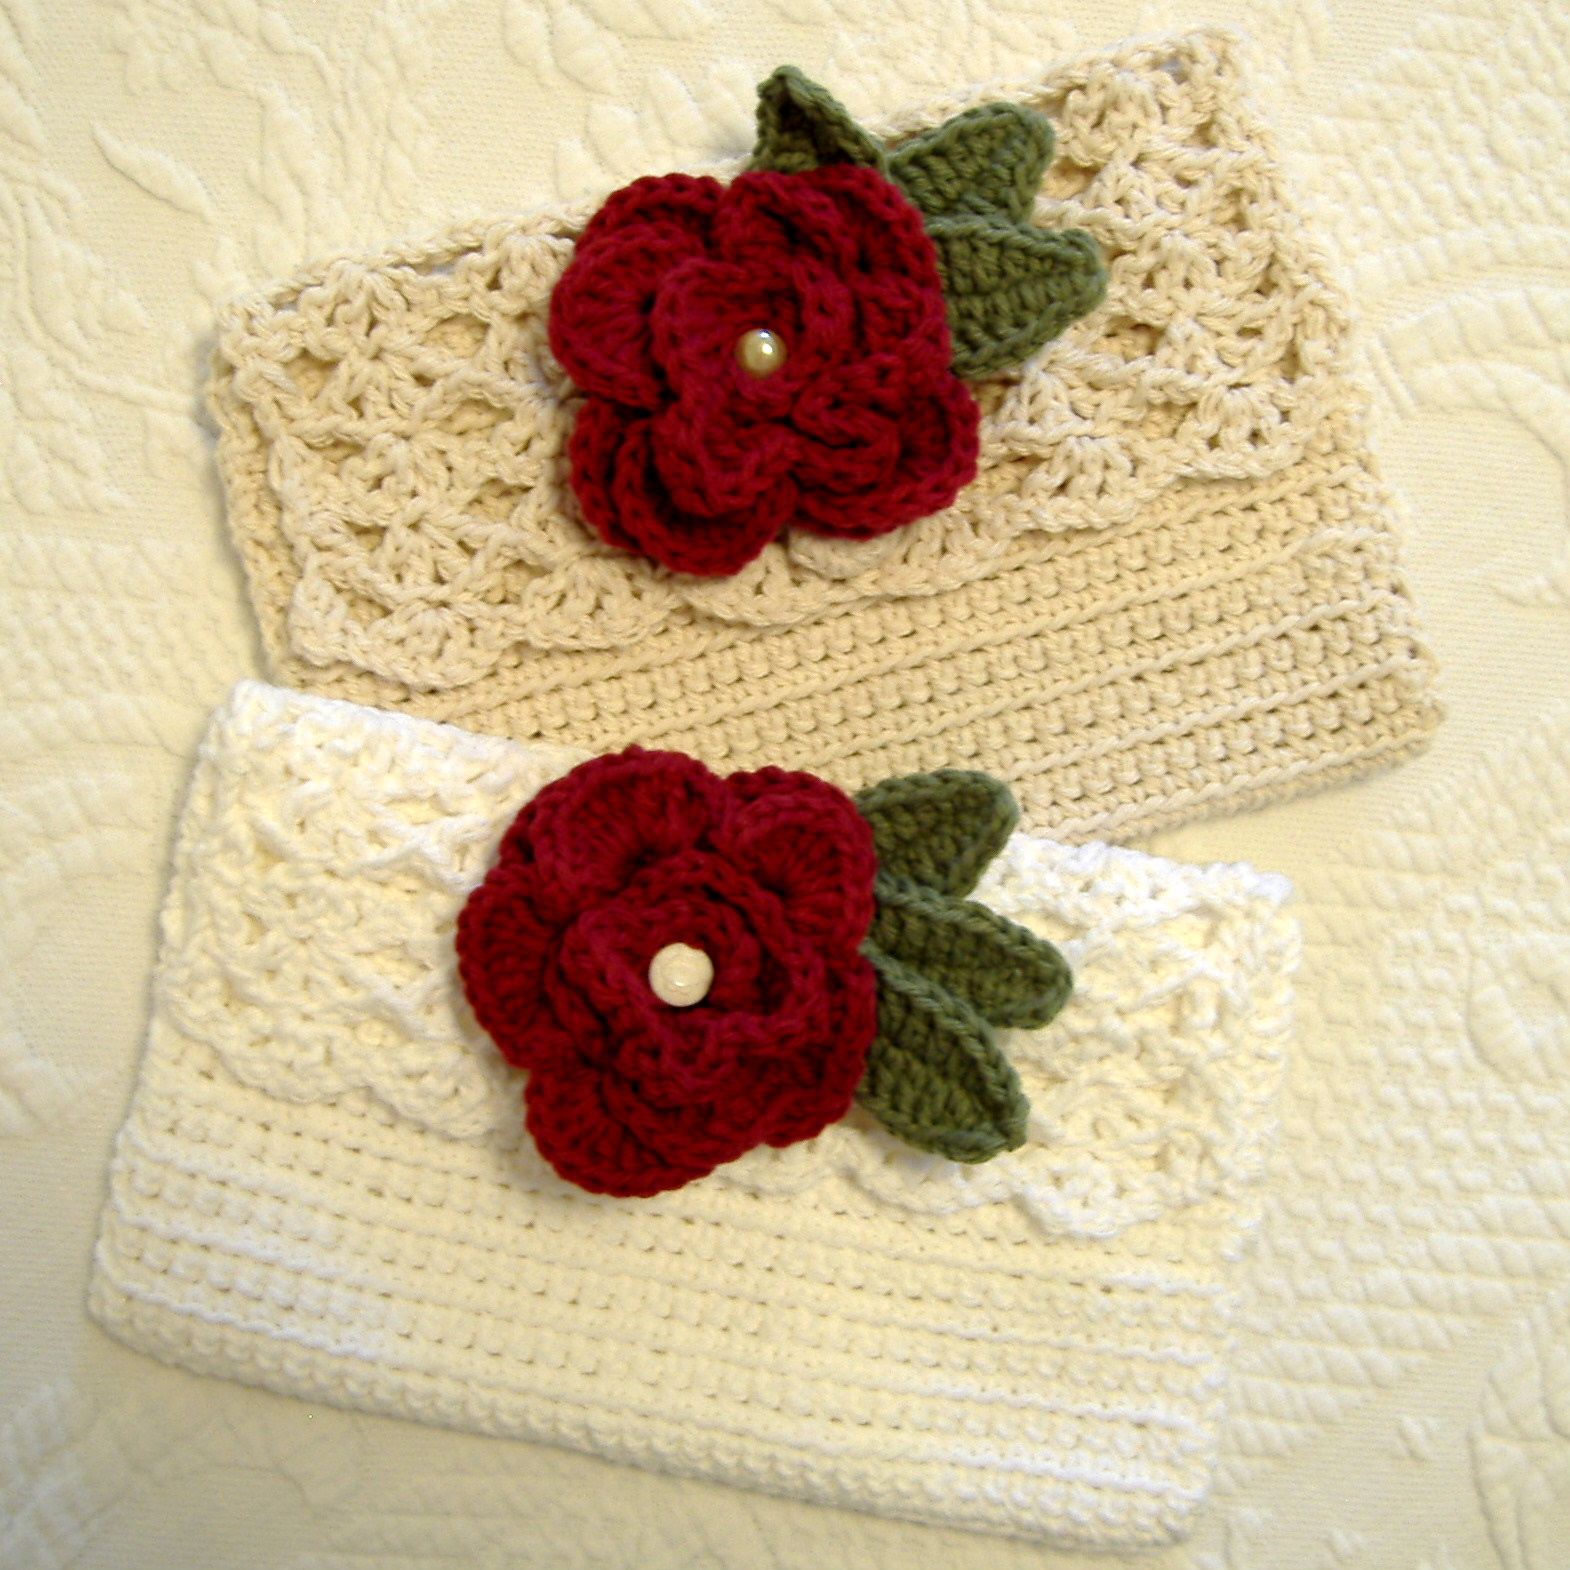 Free Crochet Purse And Bag Patterns : CROCHET PATTERNS PURSES FREE PATTERNS